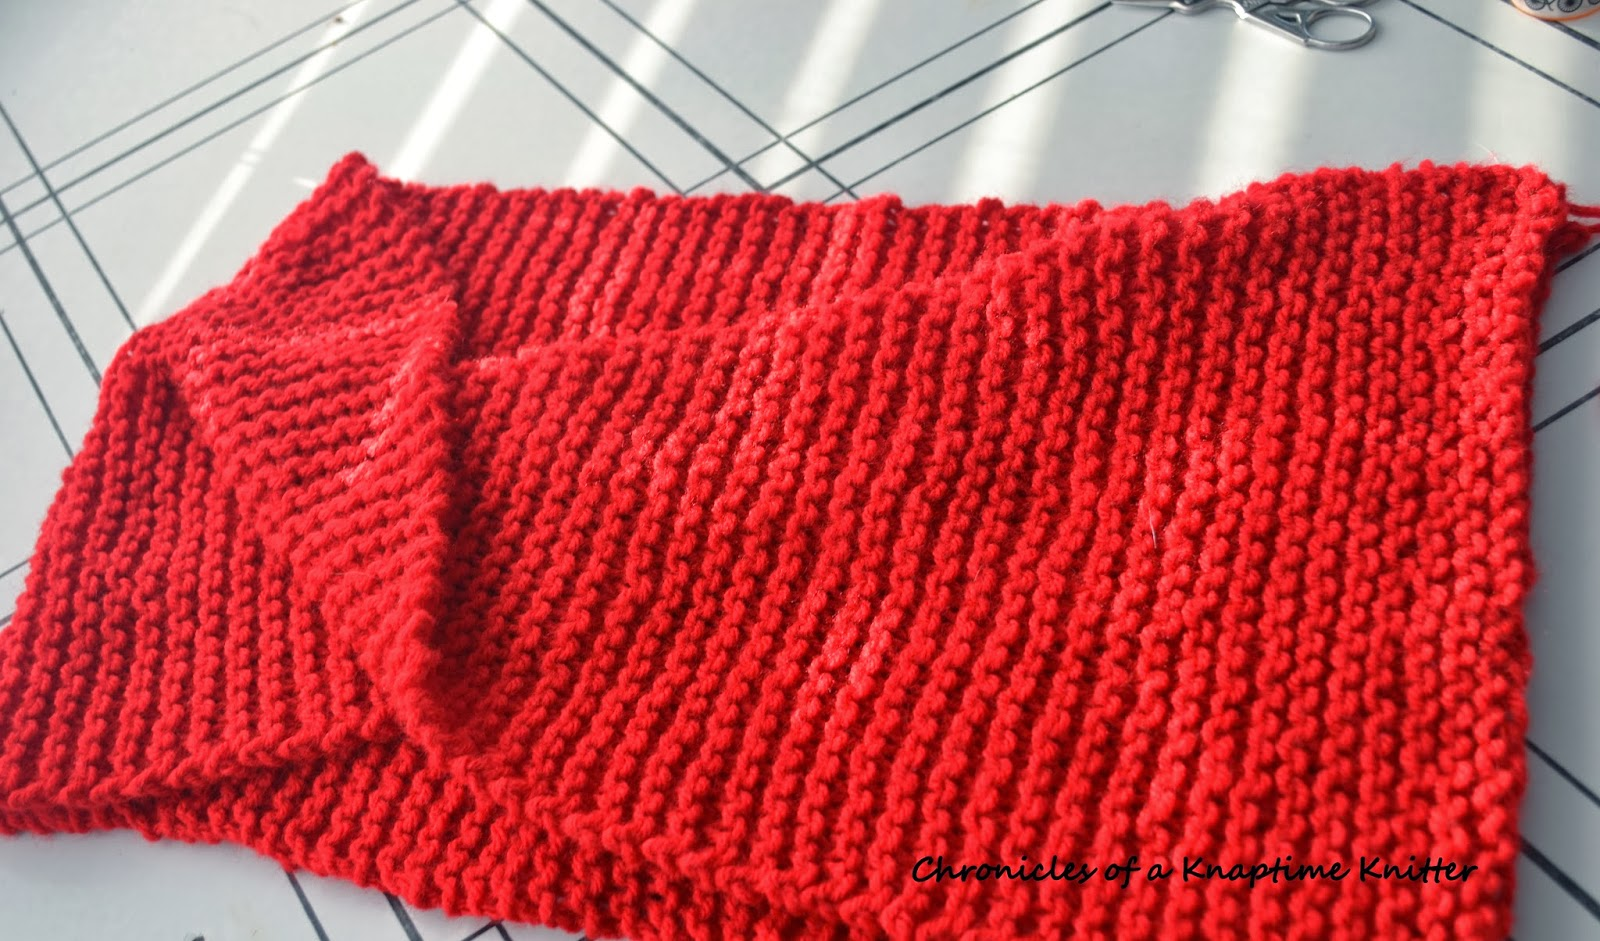 Knitting Edges Together : Free knitting pattern basic knit infinity cowl